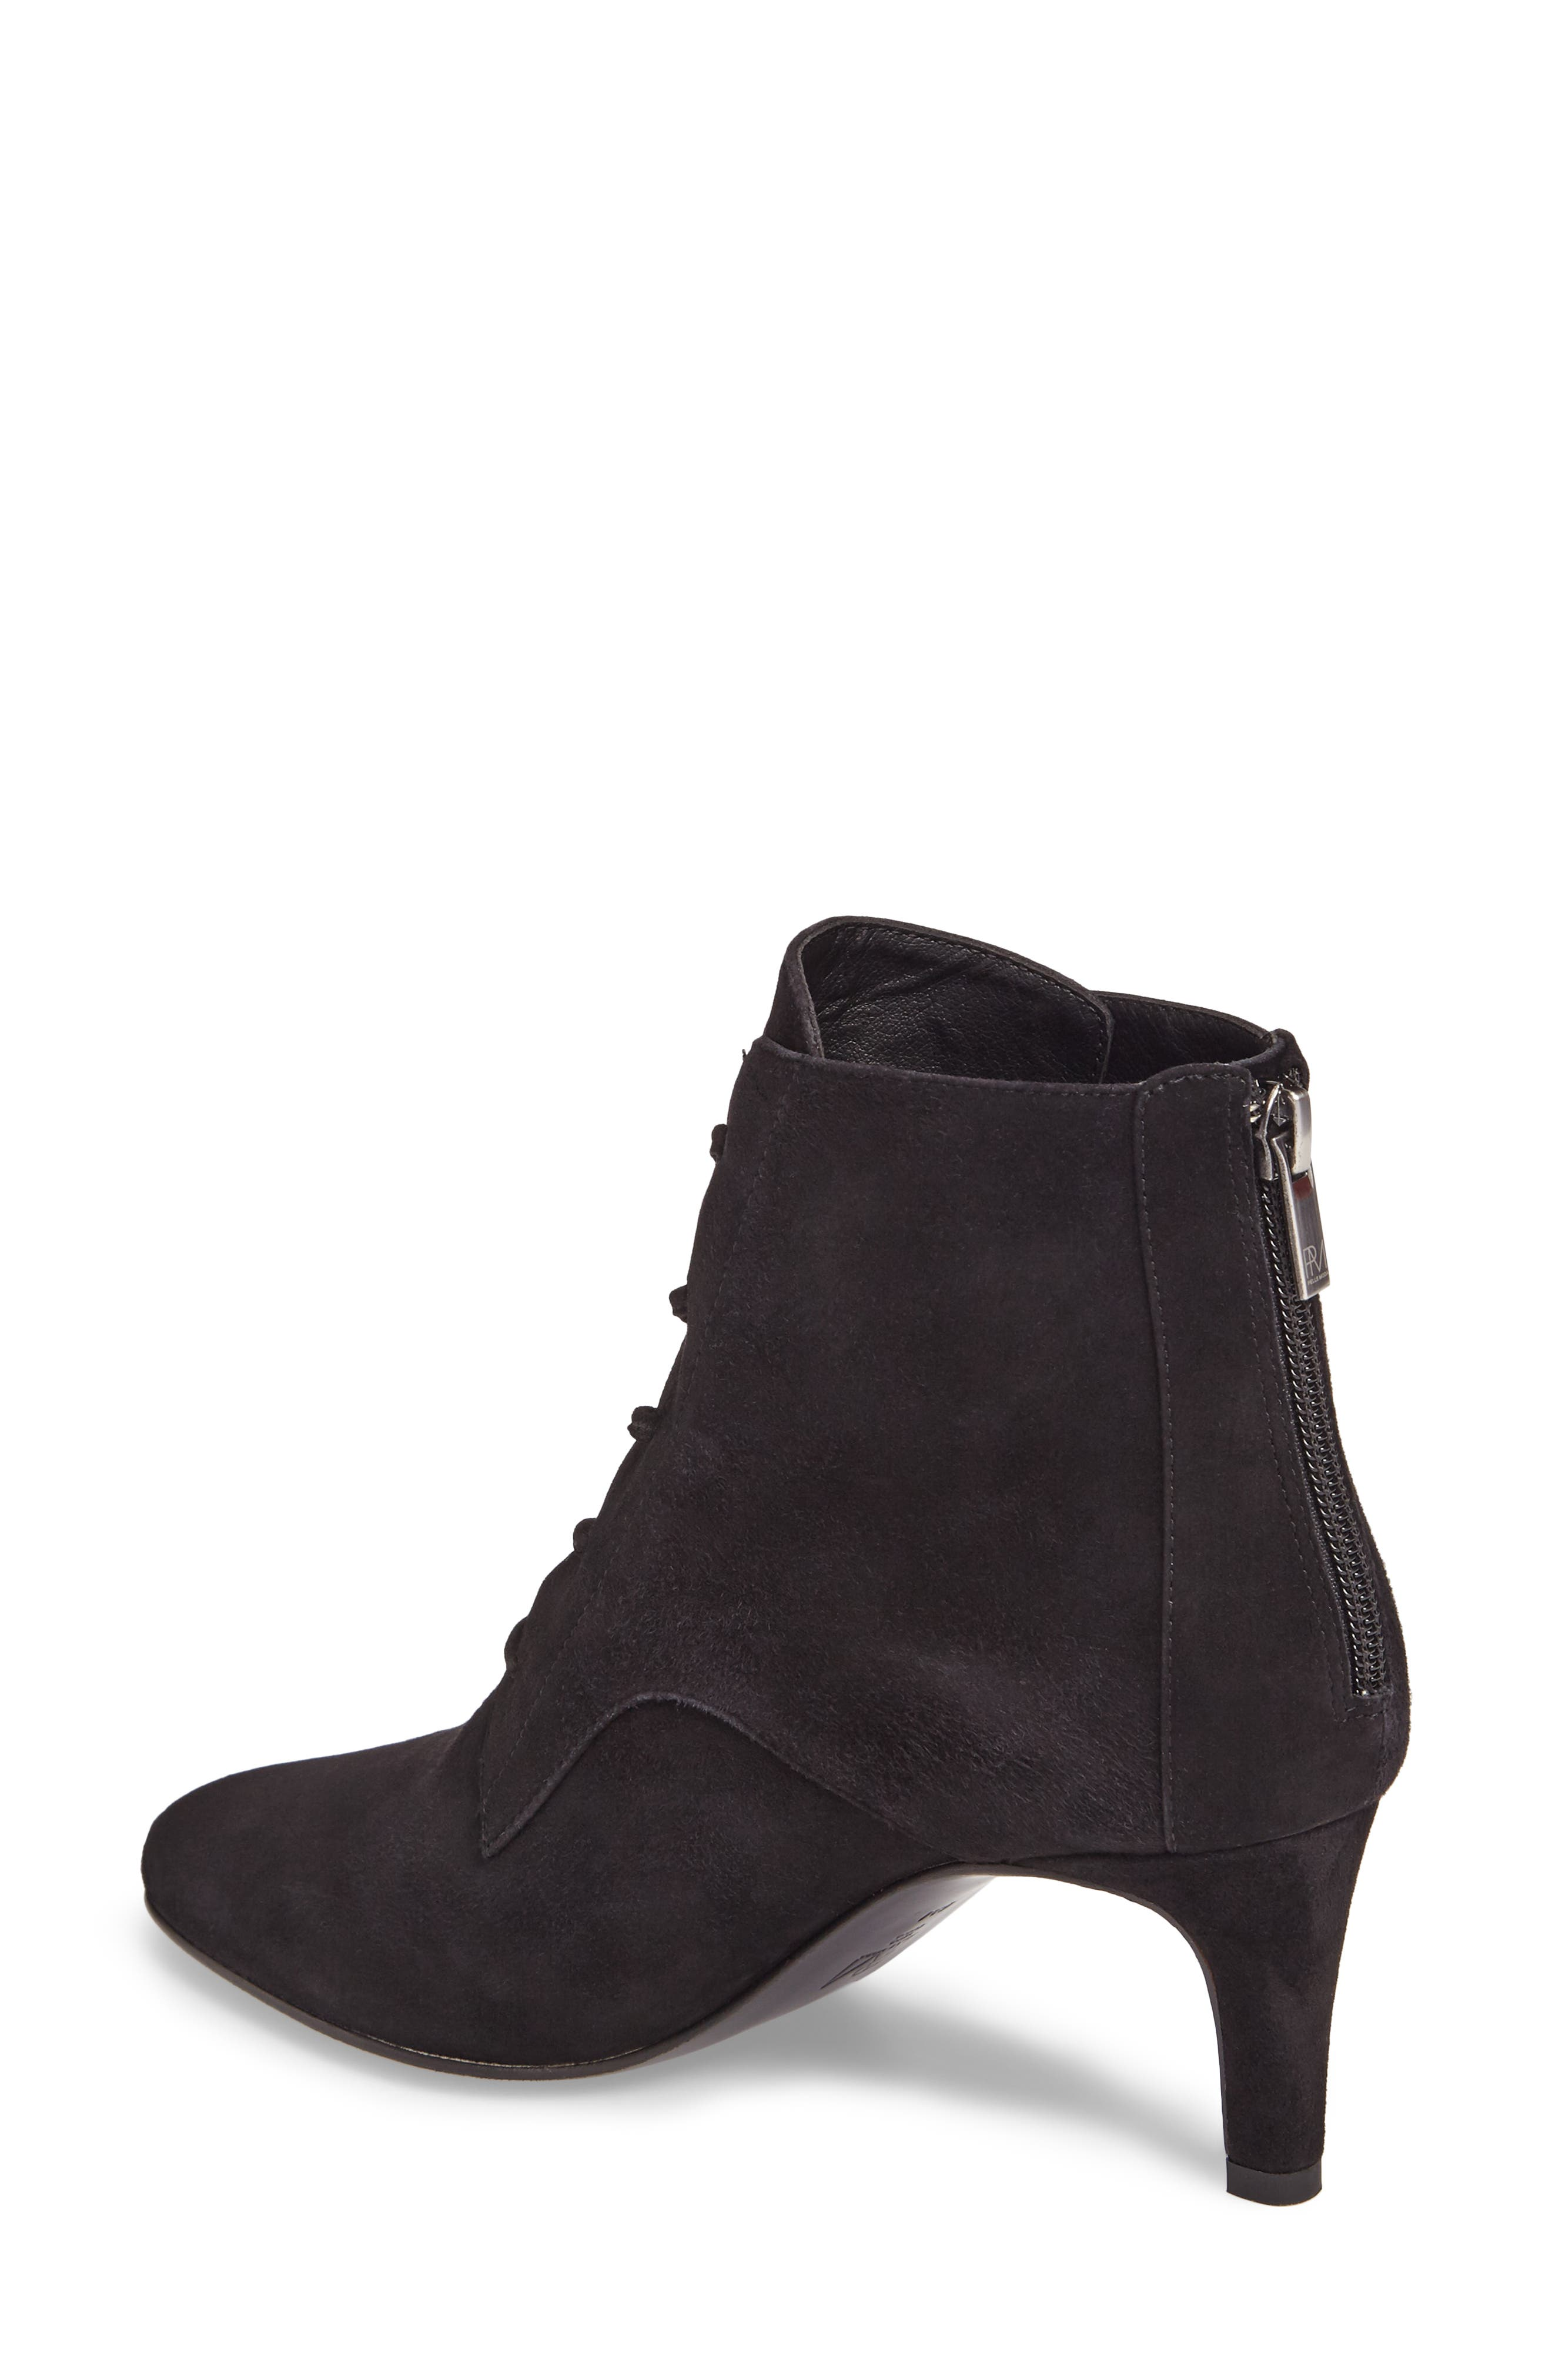 Yelen Bootie,                             Alternate thumbnail 2, color,                             Black Leather